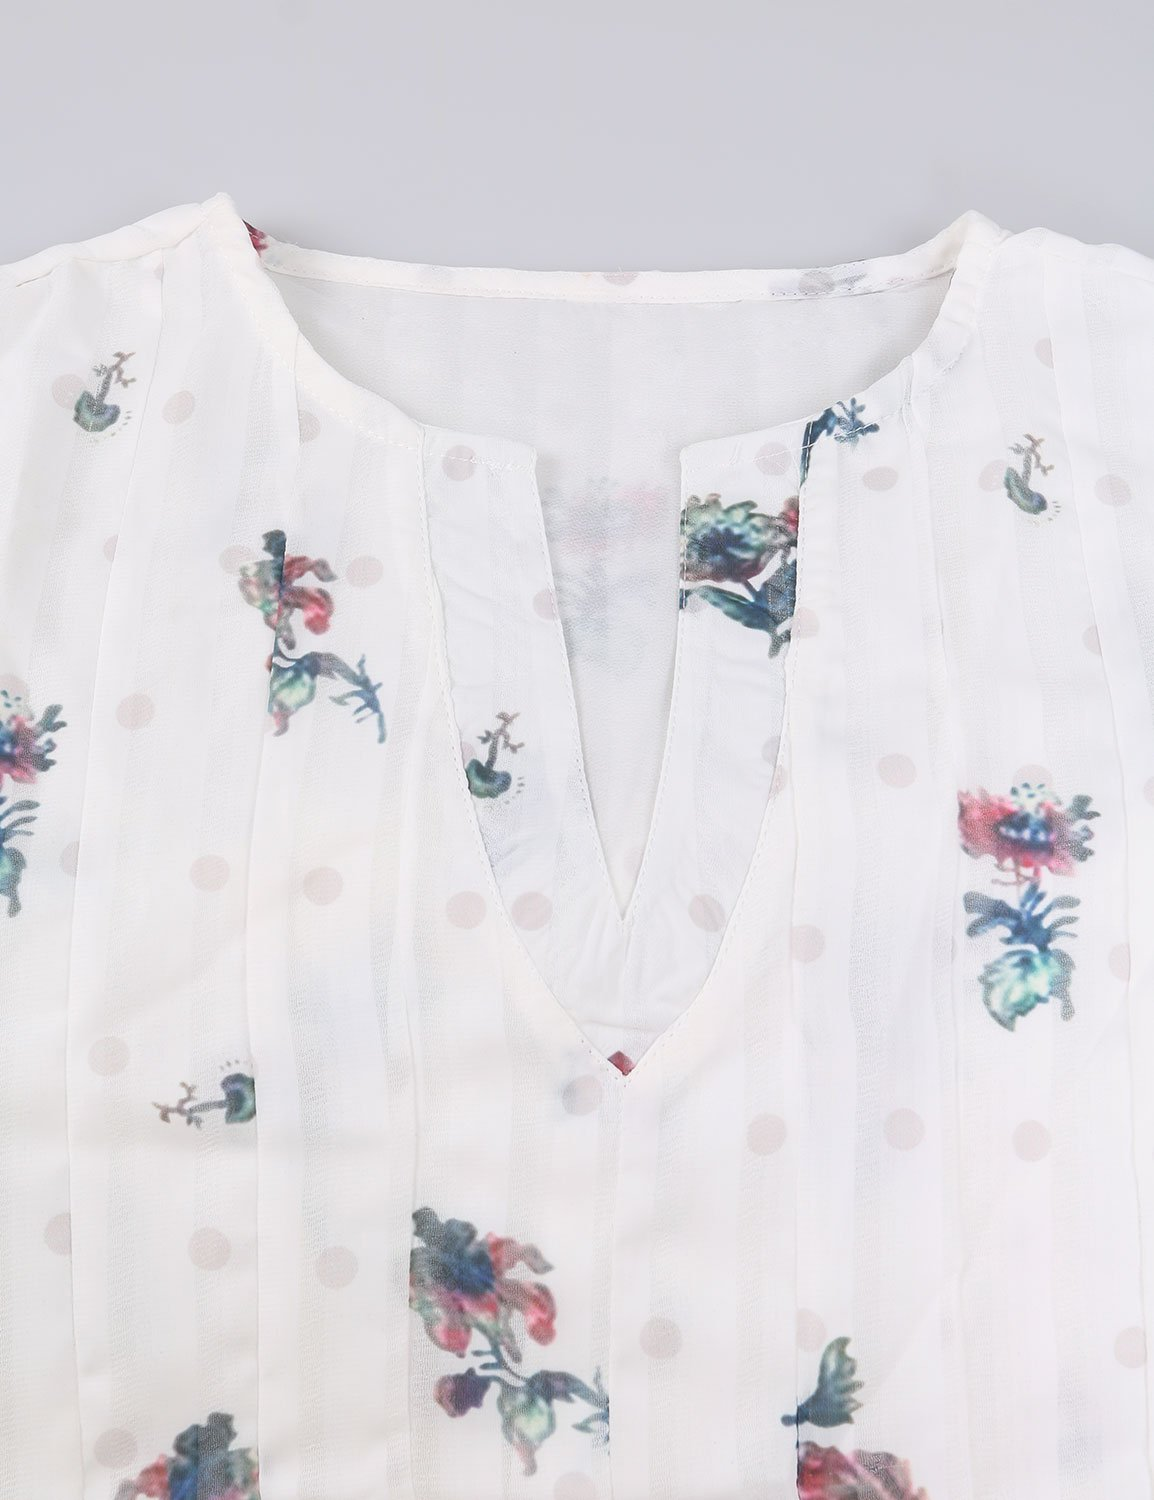 WLLW Women Bohemian Short Sleeve V Neck Floral Print T Shirt Tops Blouse Tee,White M by WLLW (Image #2)